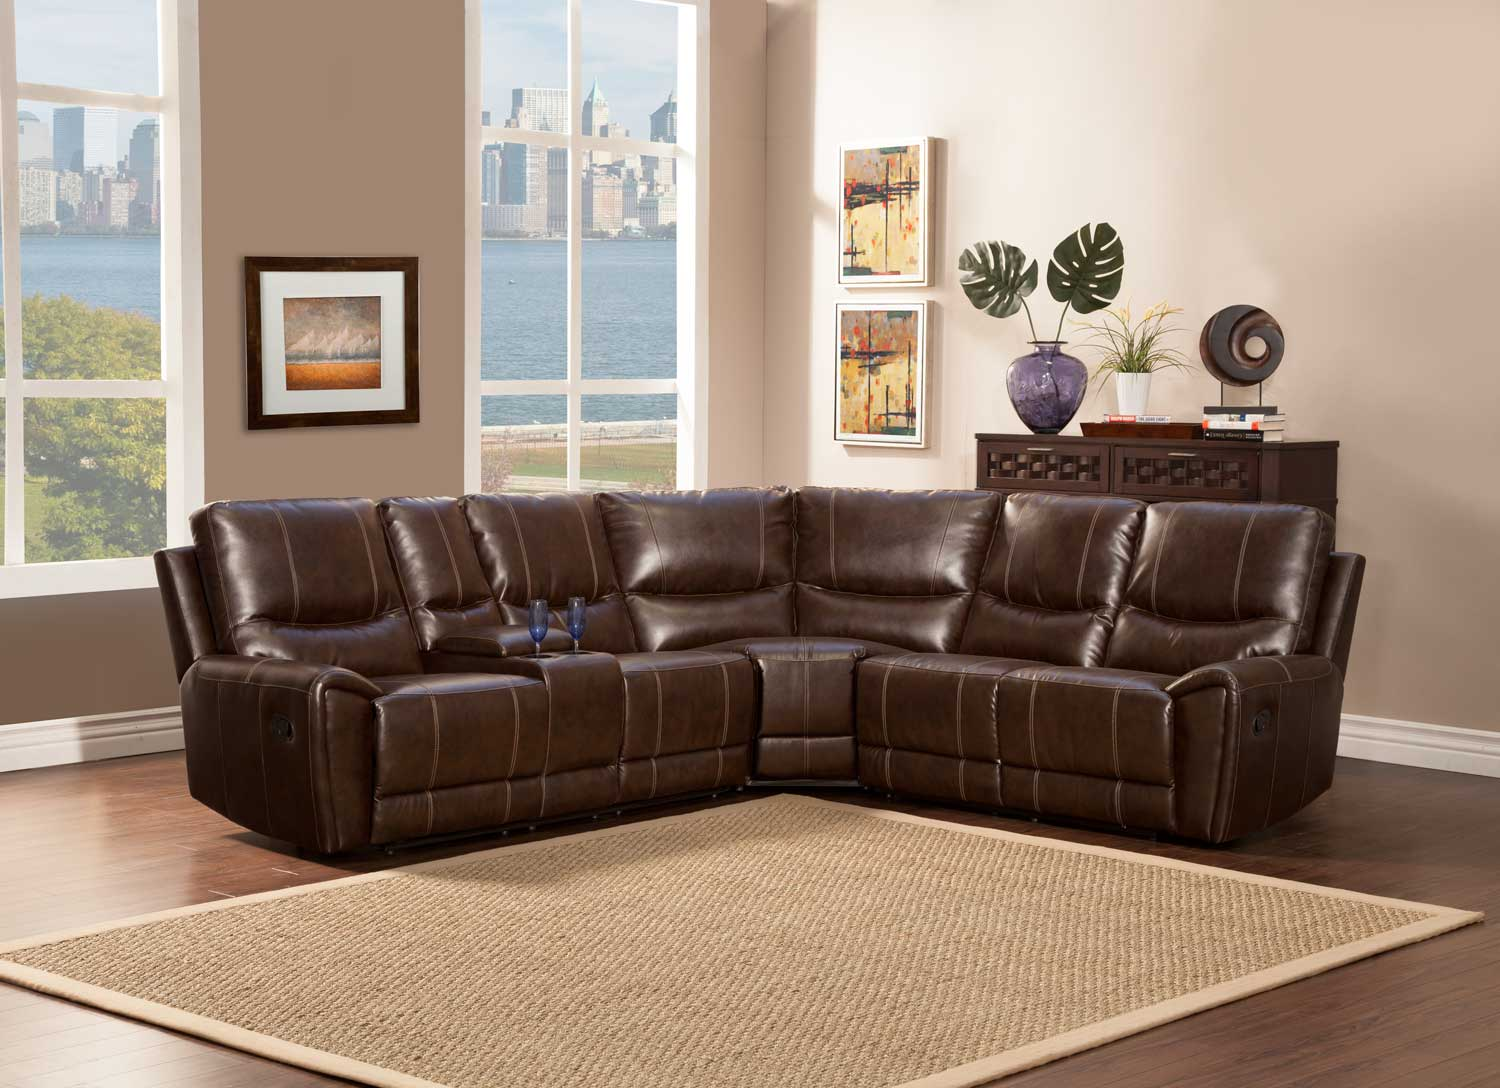 Homelegance Gerald Sectional Sofa - Brown - Bonded Leather Match